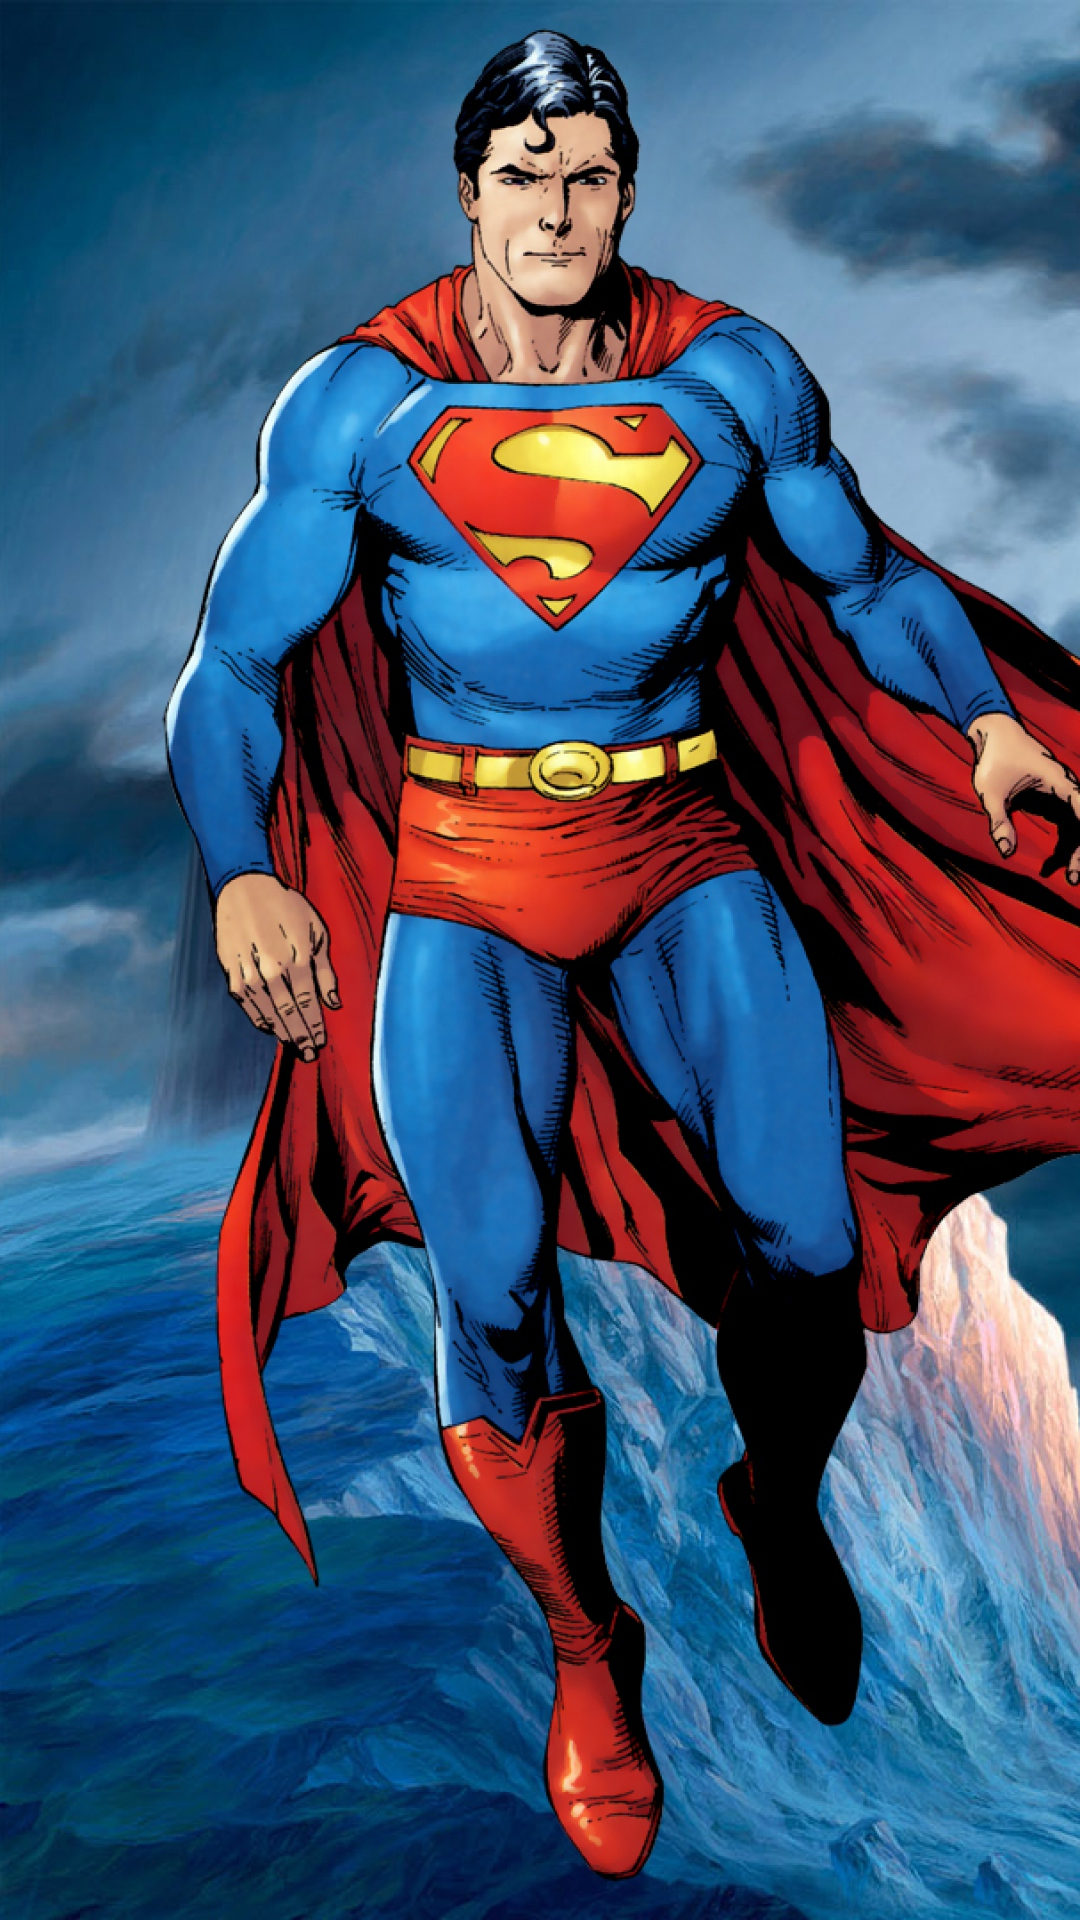 Superman Iphone Images Free Download i